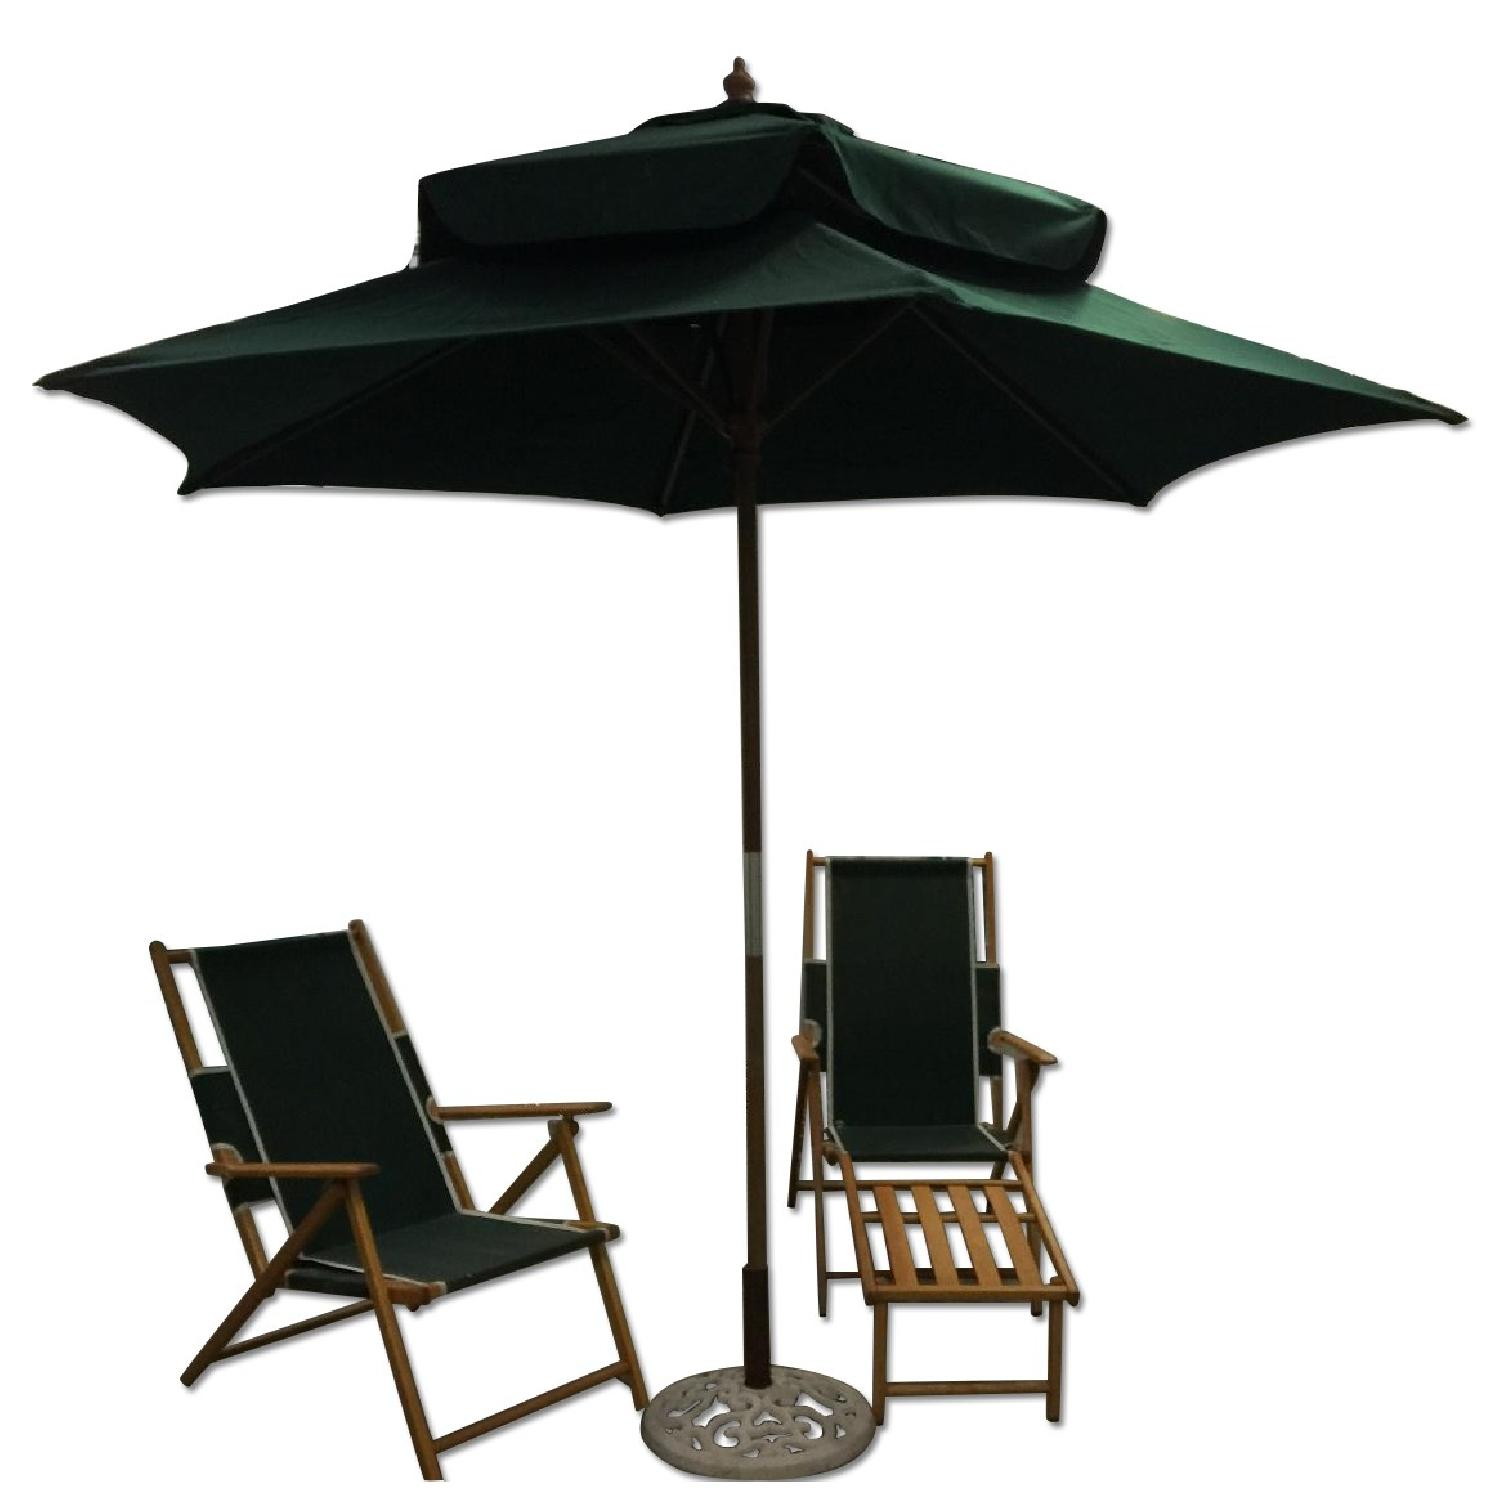 Fully Renovated Long Island Gold Coast Umbrella w/ 2 Folding Deckchairs - image-0